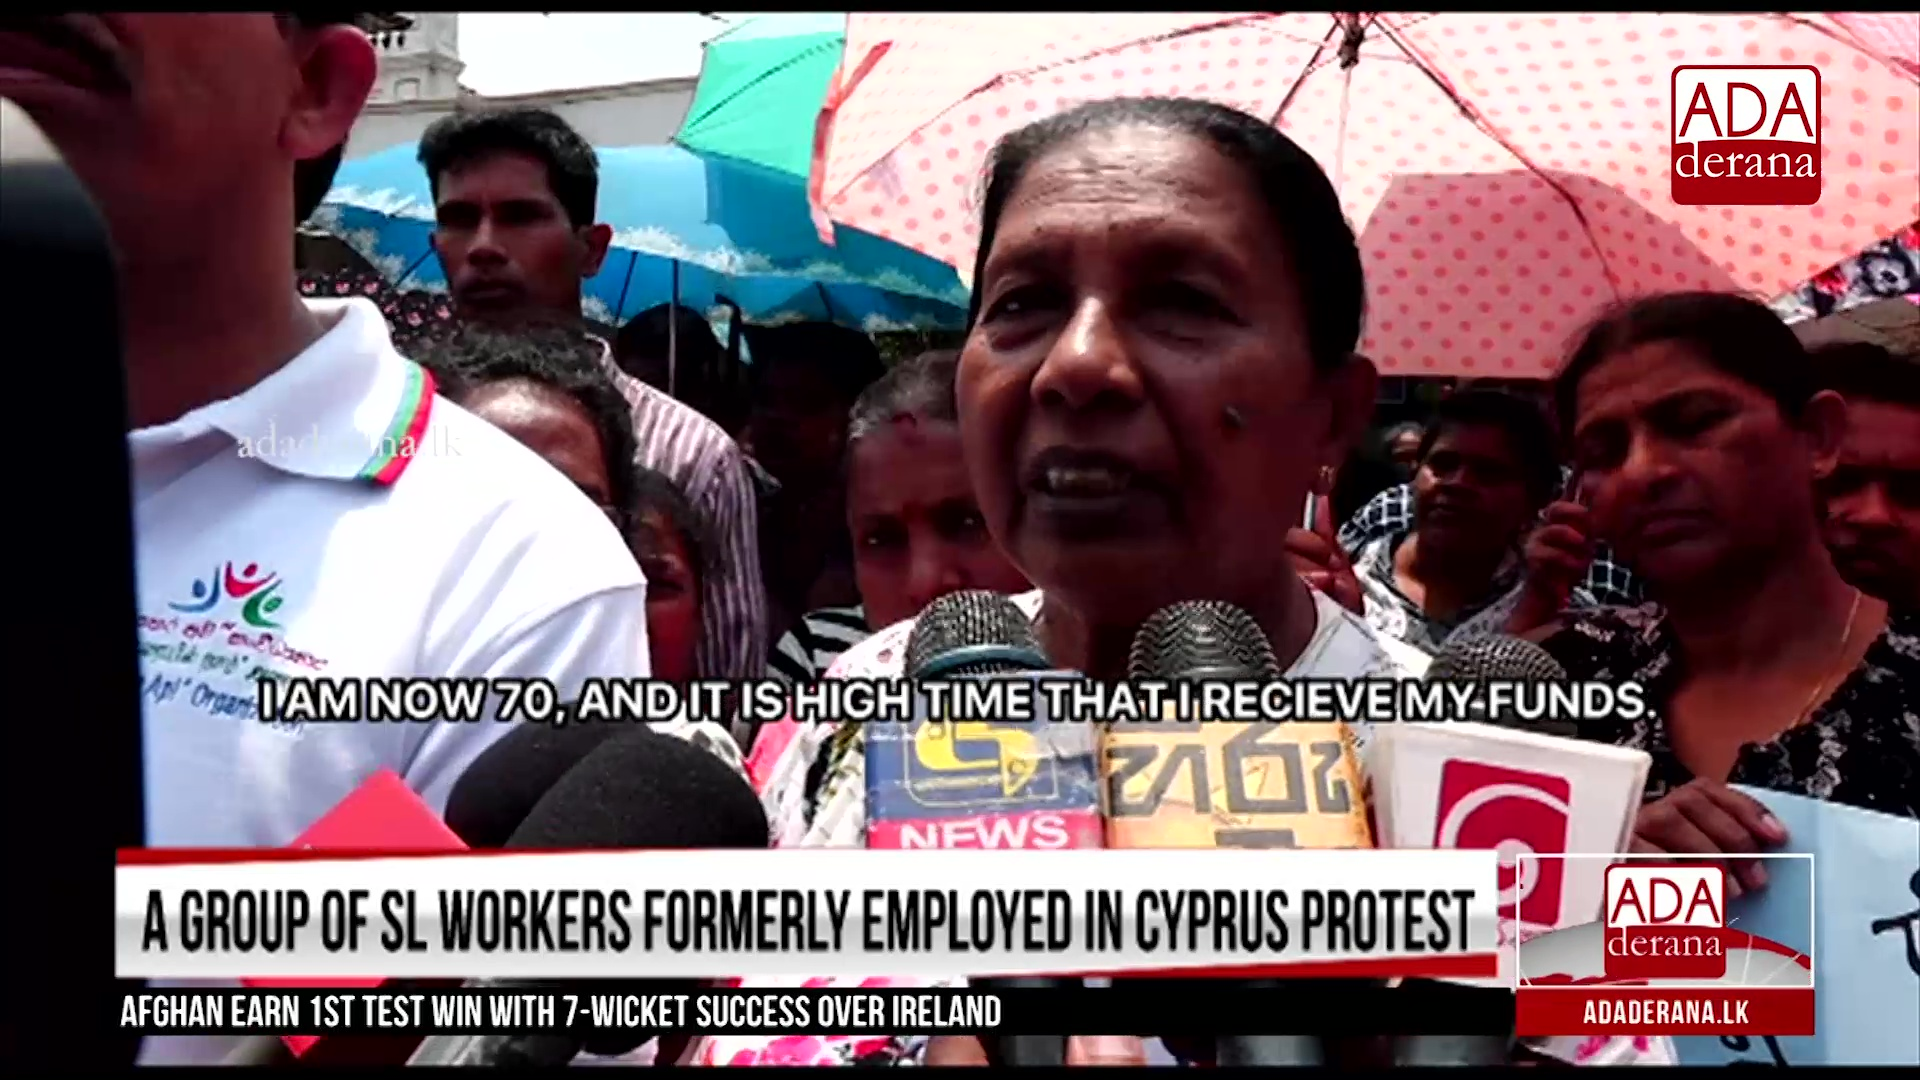 Lankans formerly employed in Cyprus protest over Social Benefits Fund (English)